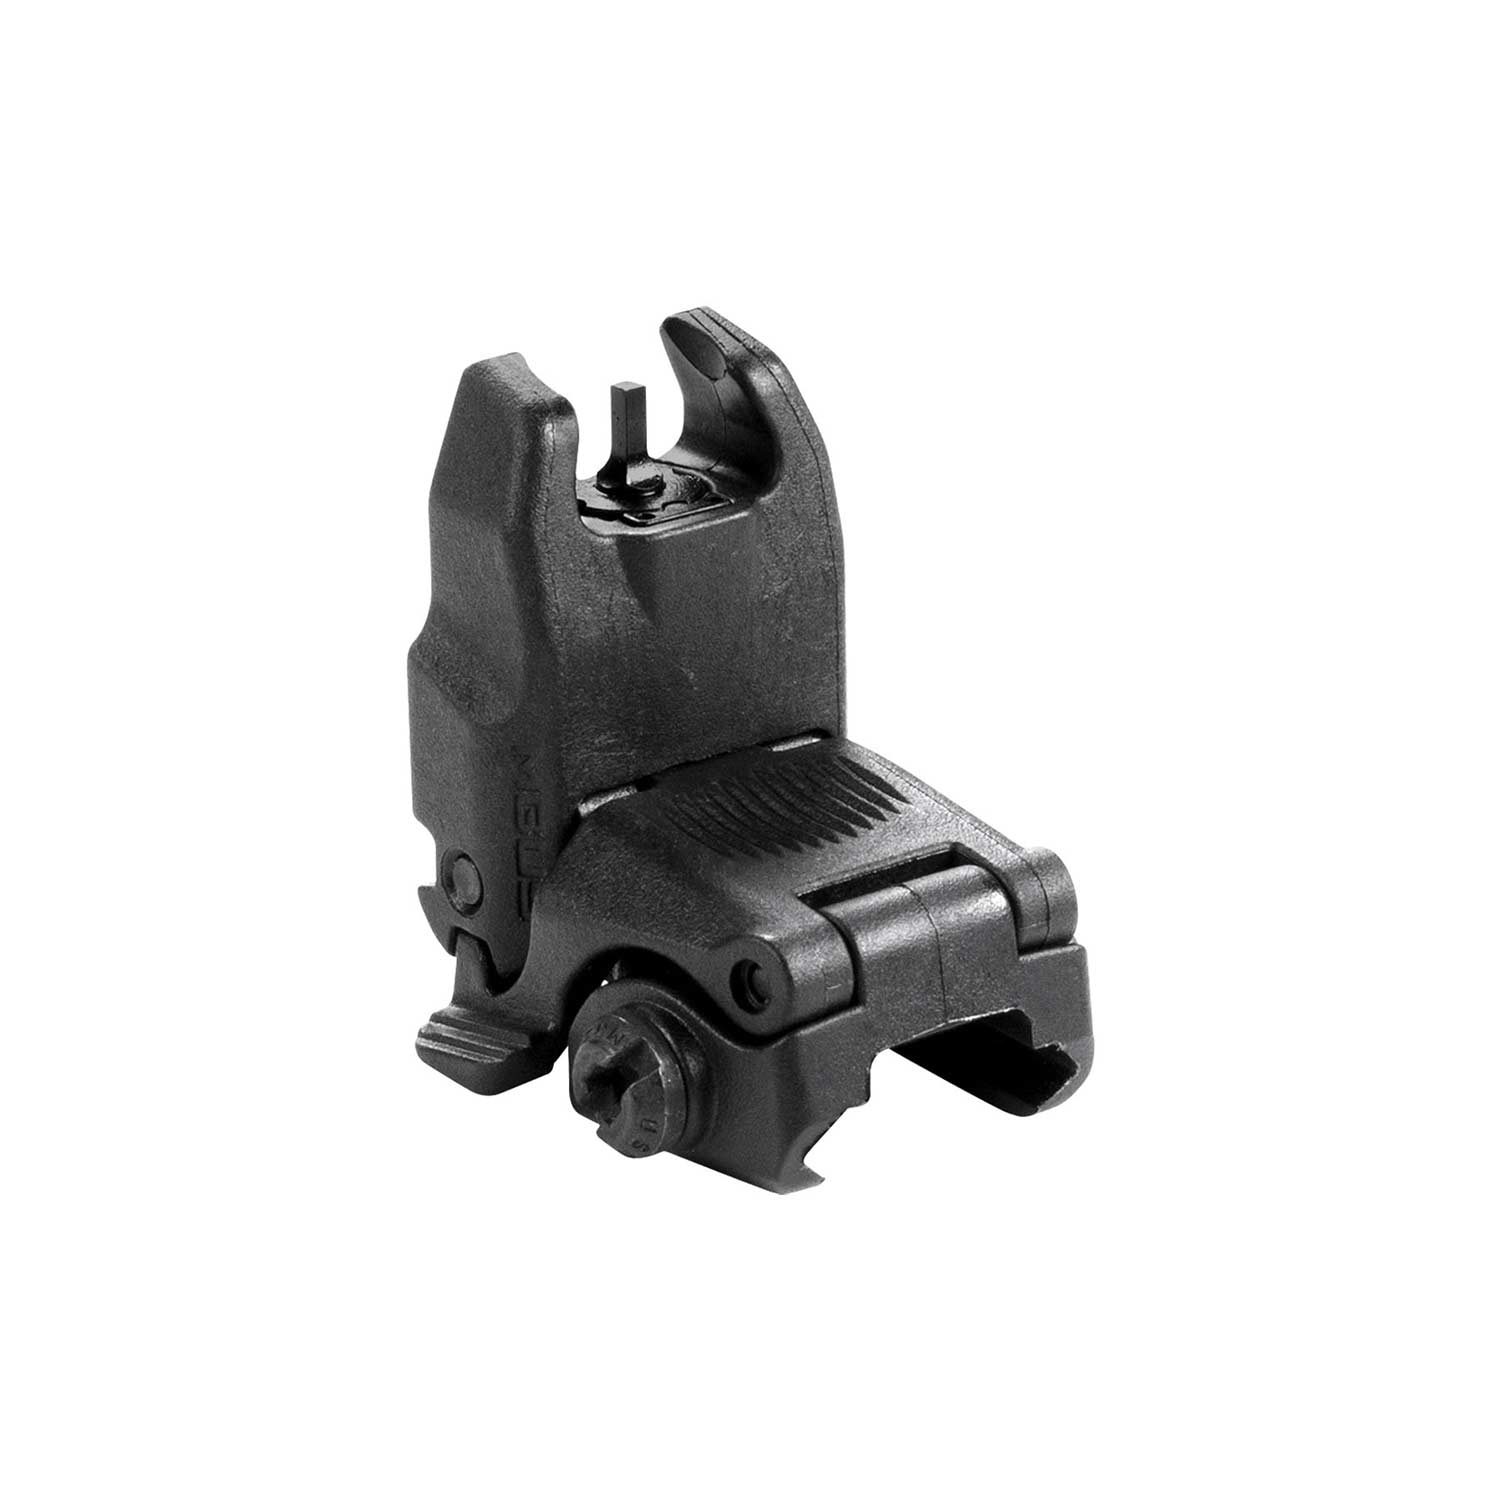 Magpul Back-up Sights (MBUS) Front Sight